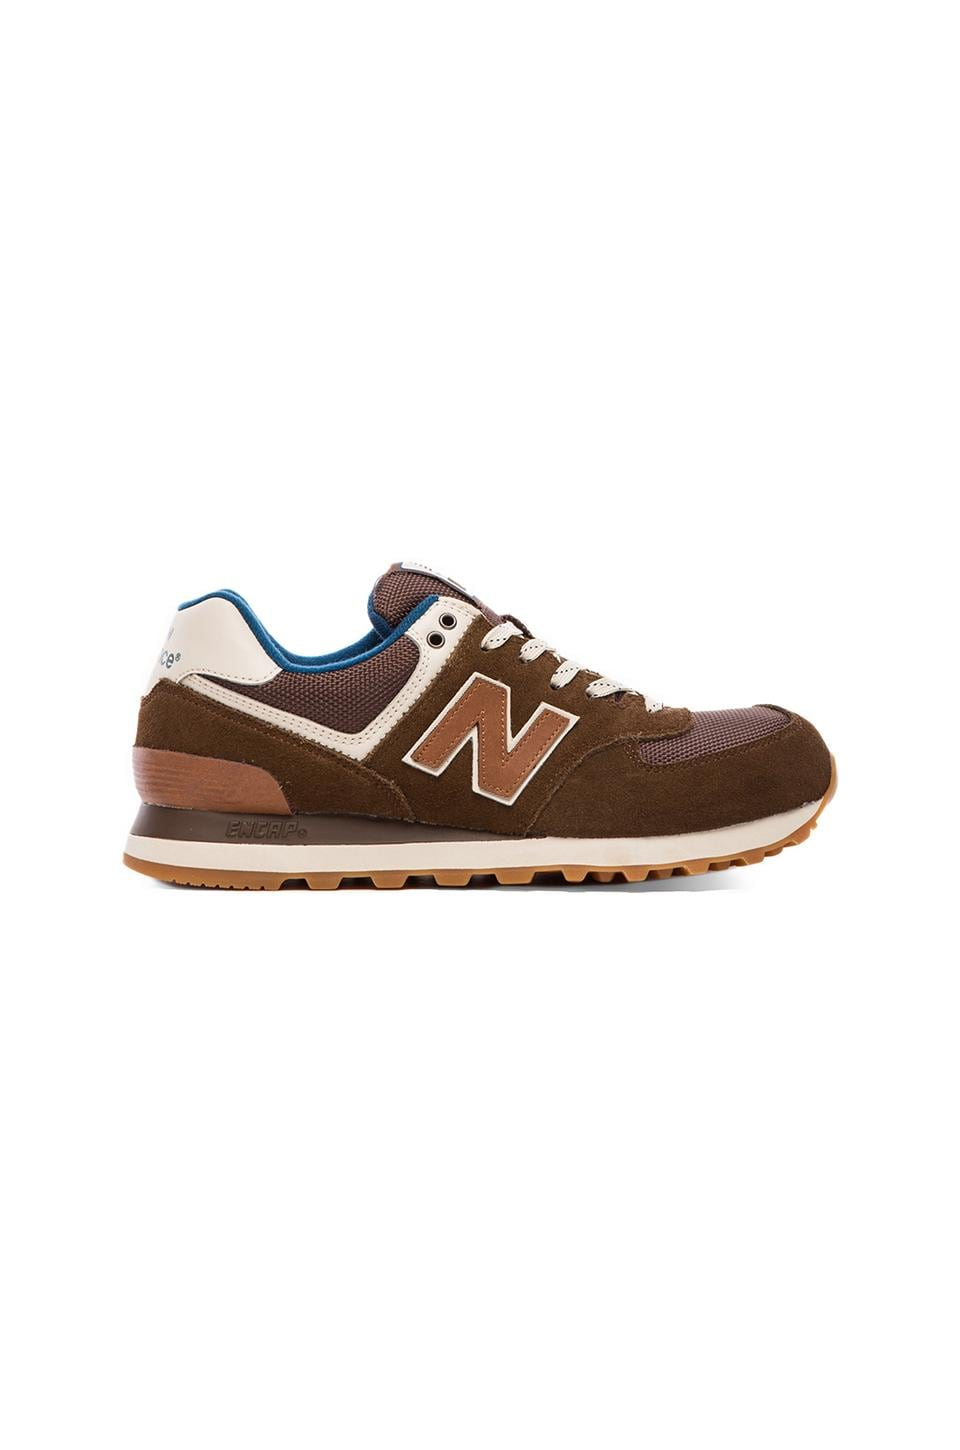 New Balance ML574 in Brown & Navy